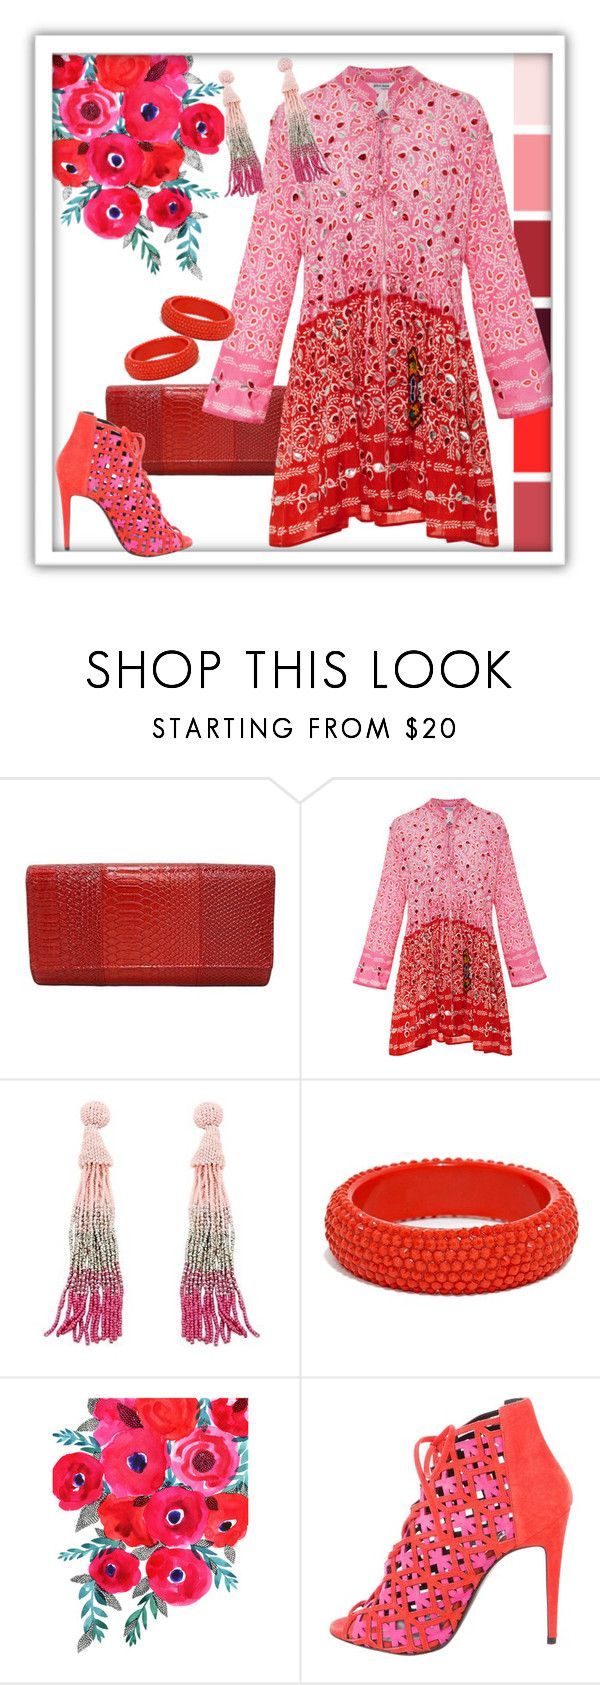 """""""Paisley in Red & Pink"""" by shoppe23 ❤ liked on Polyvore featuring Juliet Dunn, Pierre Hardy, paisley, tassels, tasselearrings, Shoppe23 and SpikedBangle"""